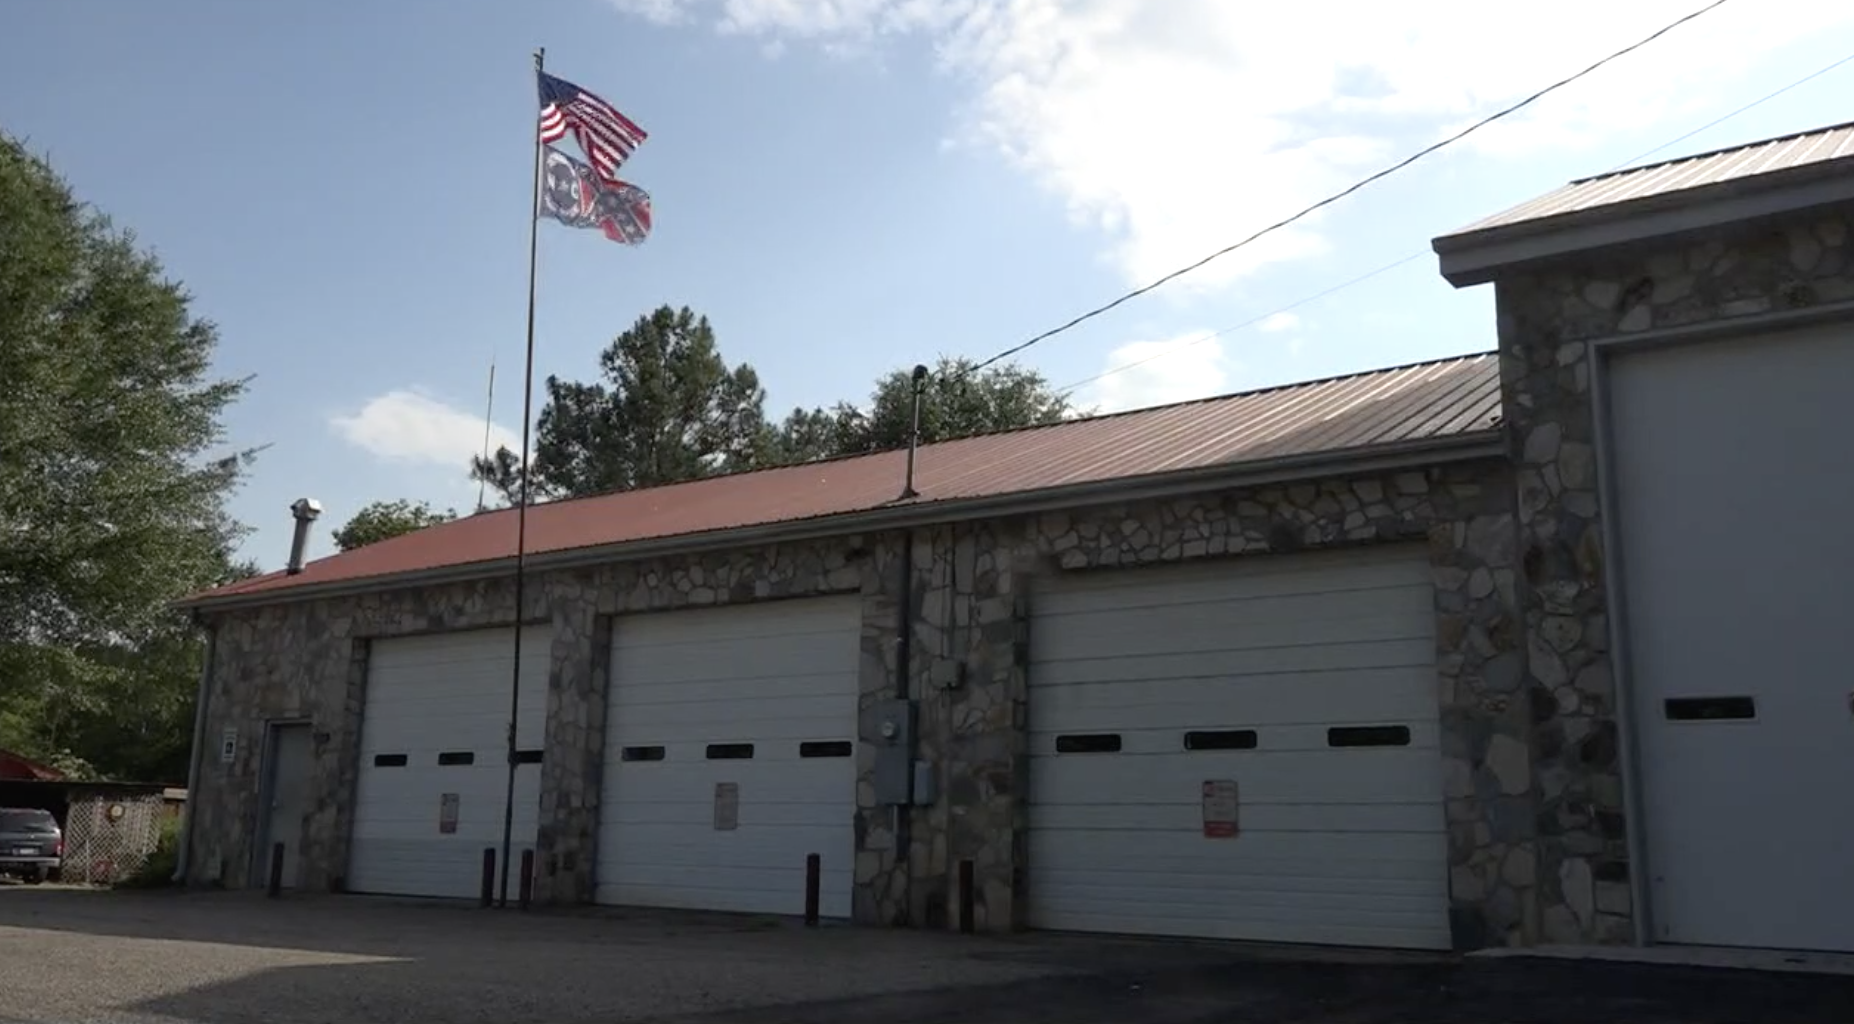 Fire House Loses Funding For Flying Confederate Flag [VIDEO]